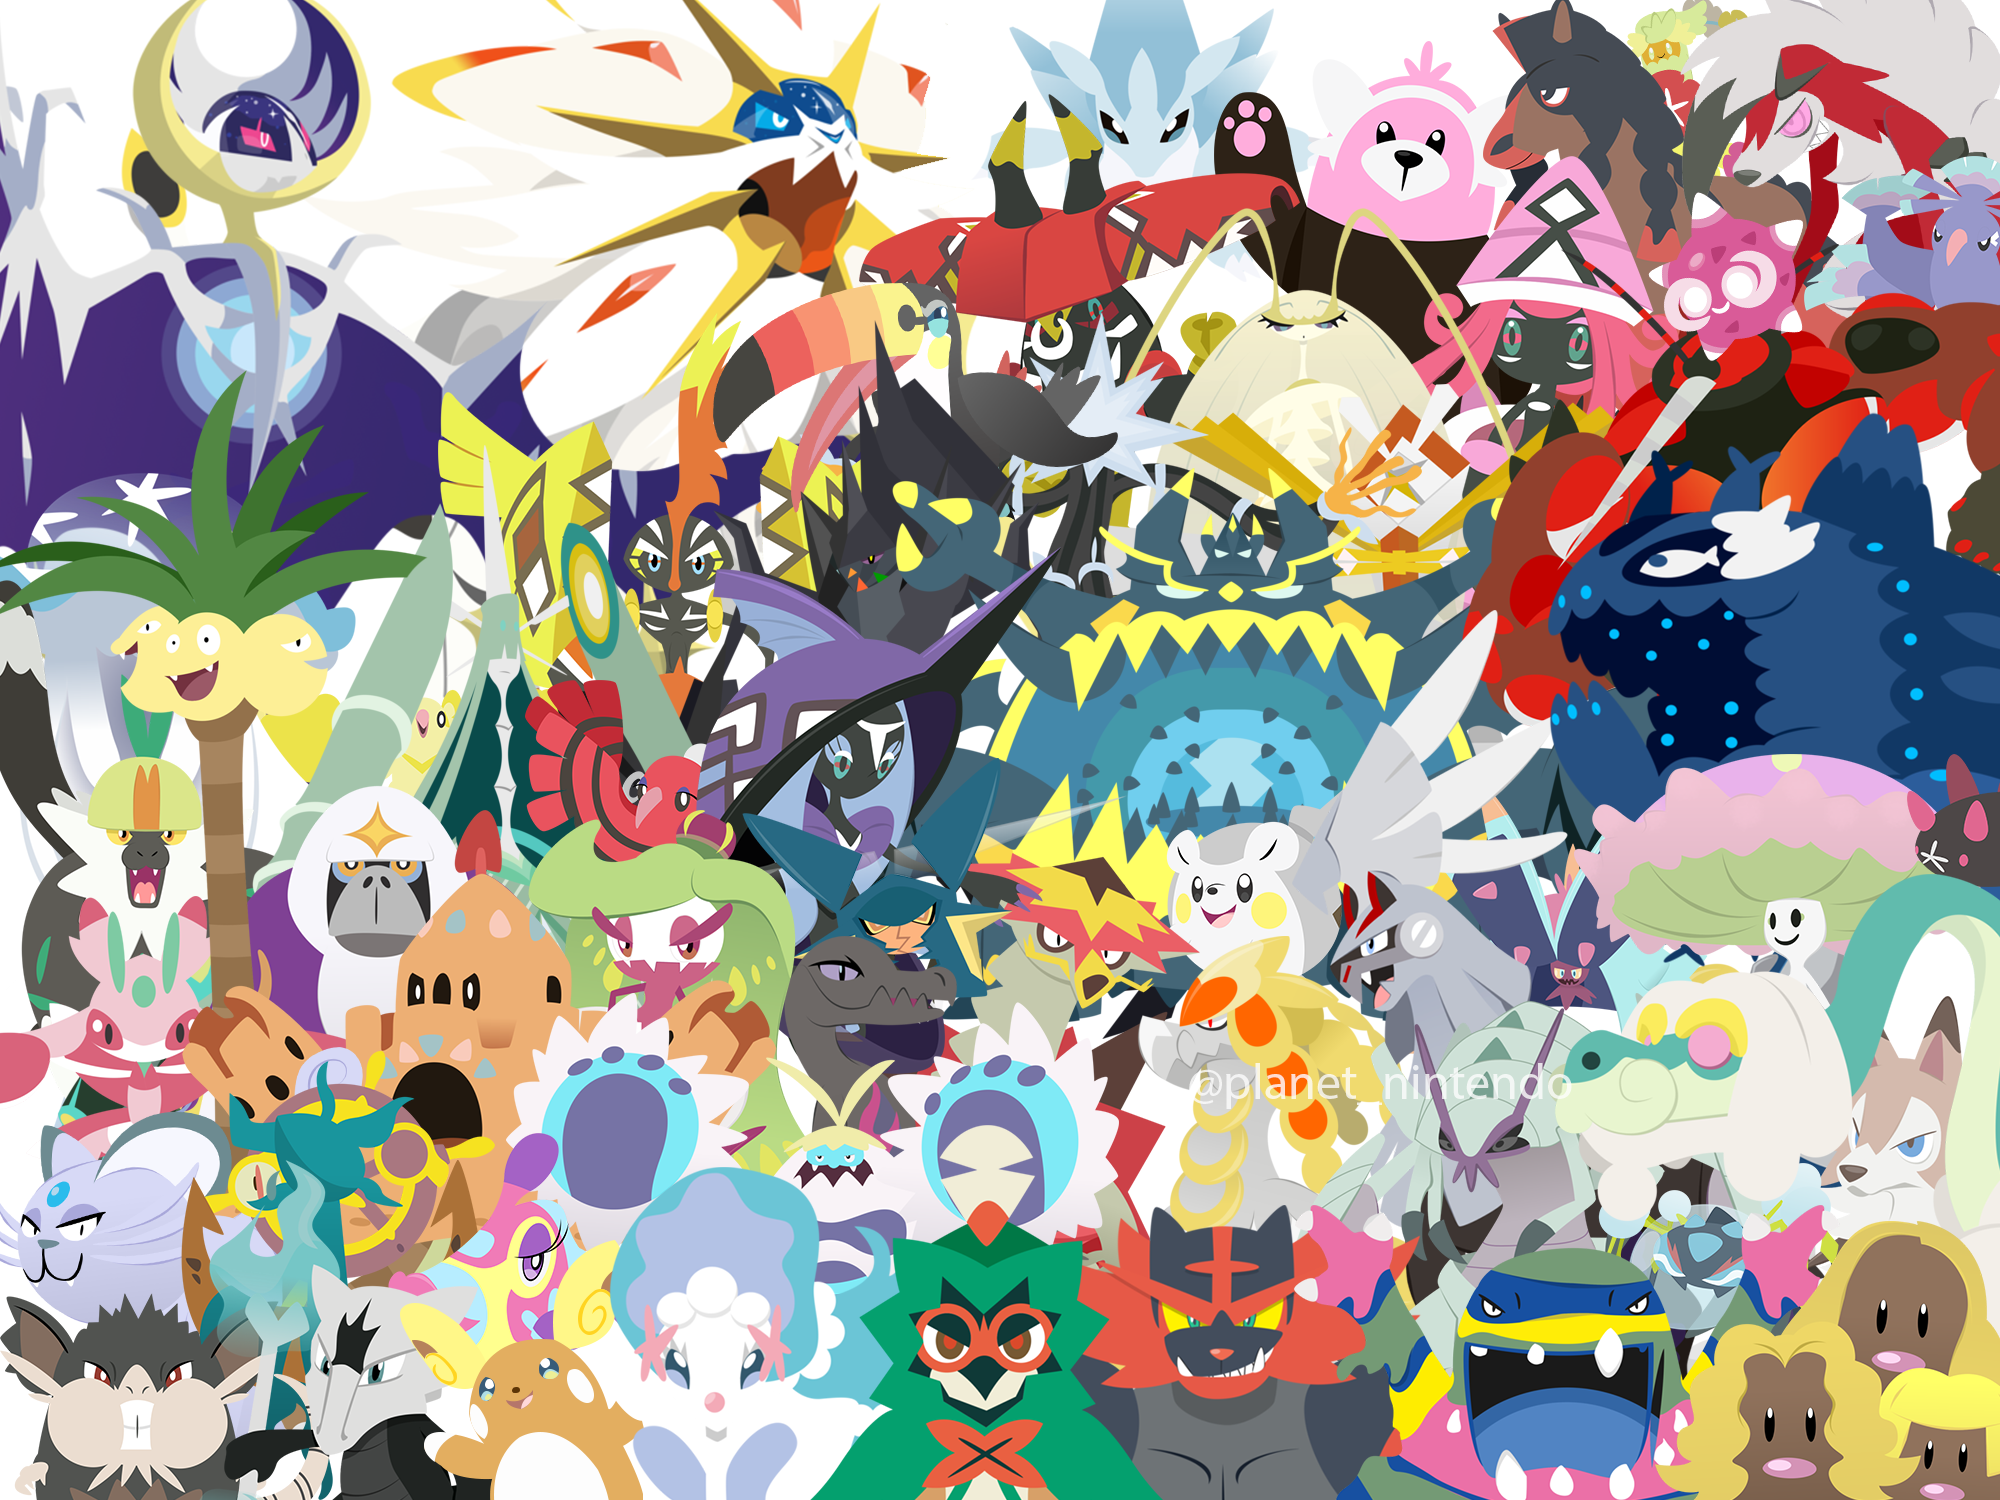 Pokemon Sun And Moon Wallpaper By Planetnintendo On Deviantart